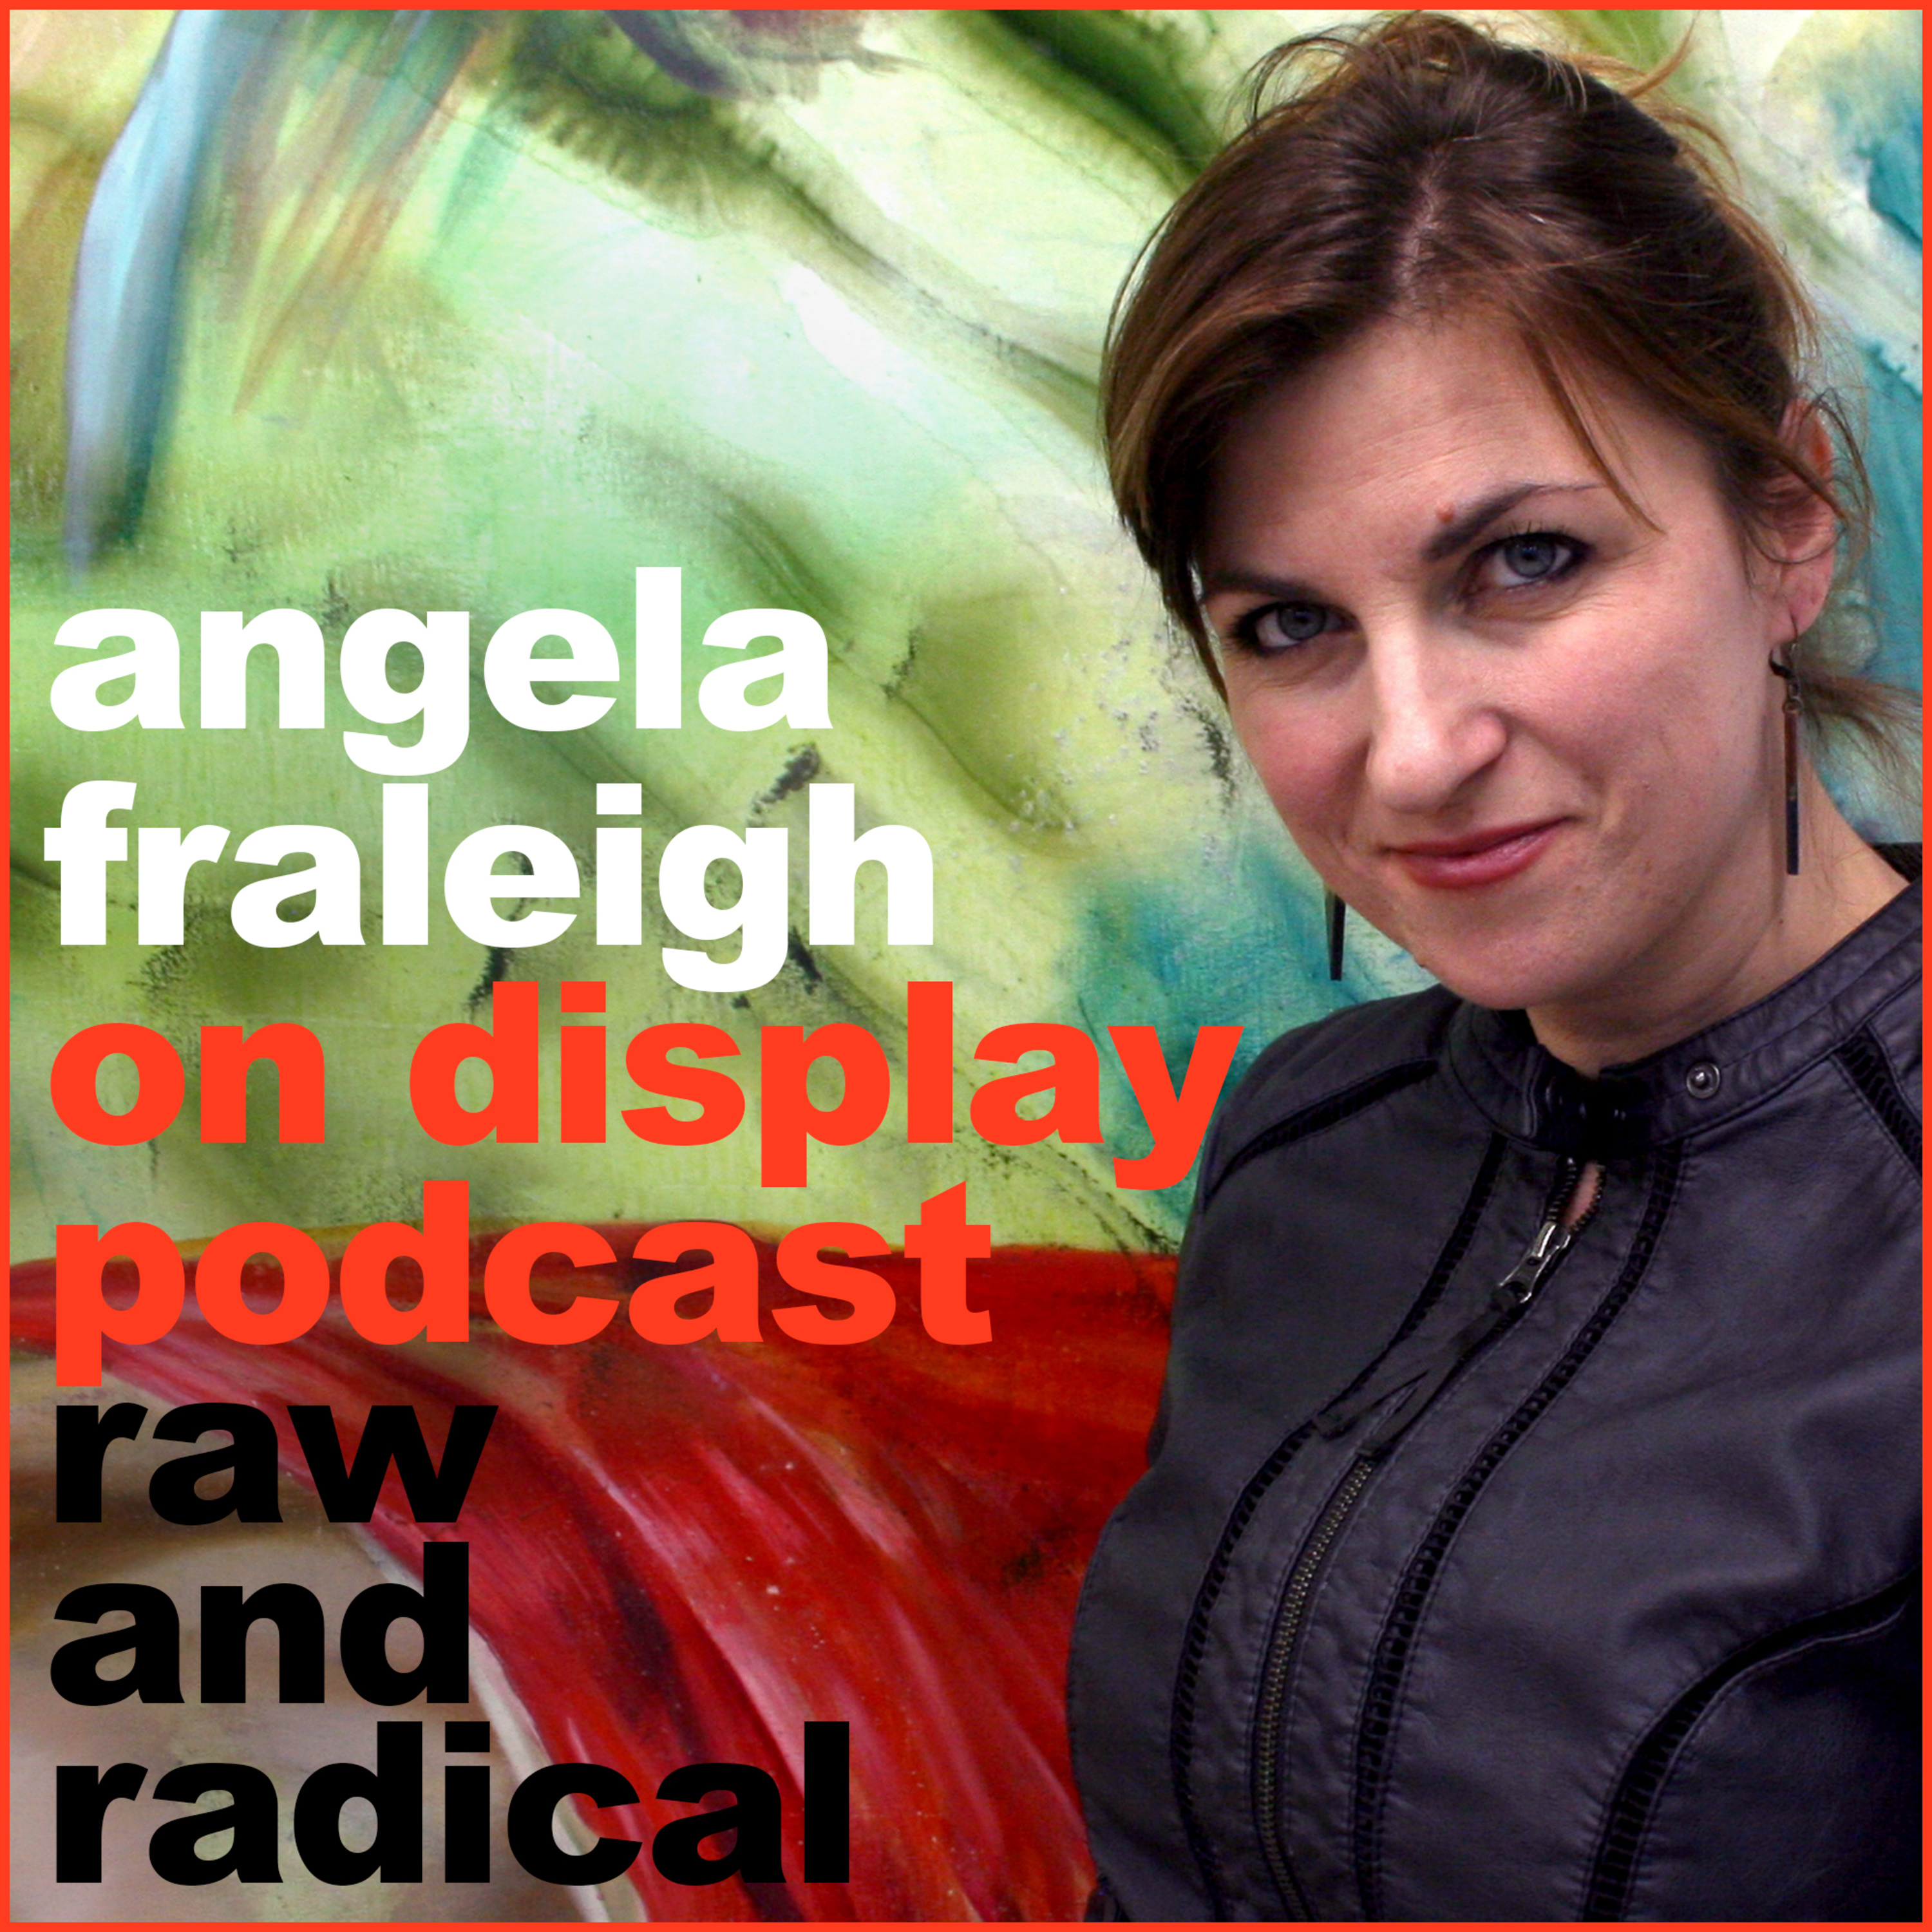 On Display - A Conversation with Angela Fraleigh - Episode 04